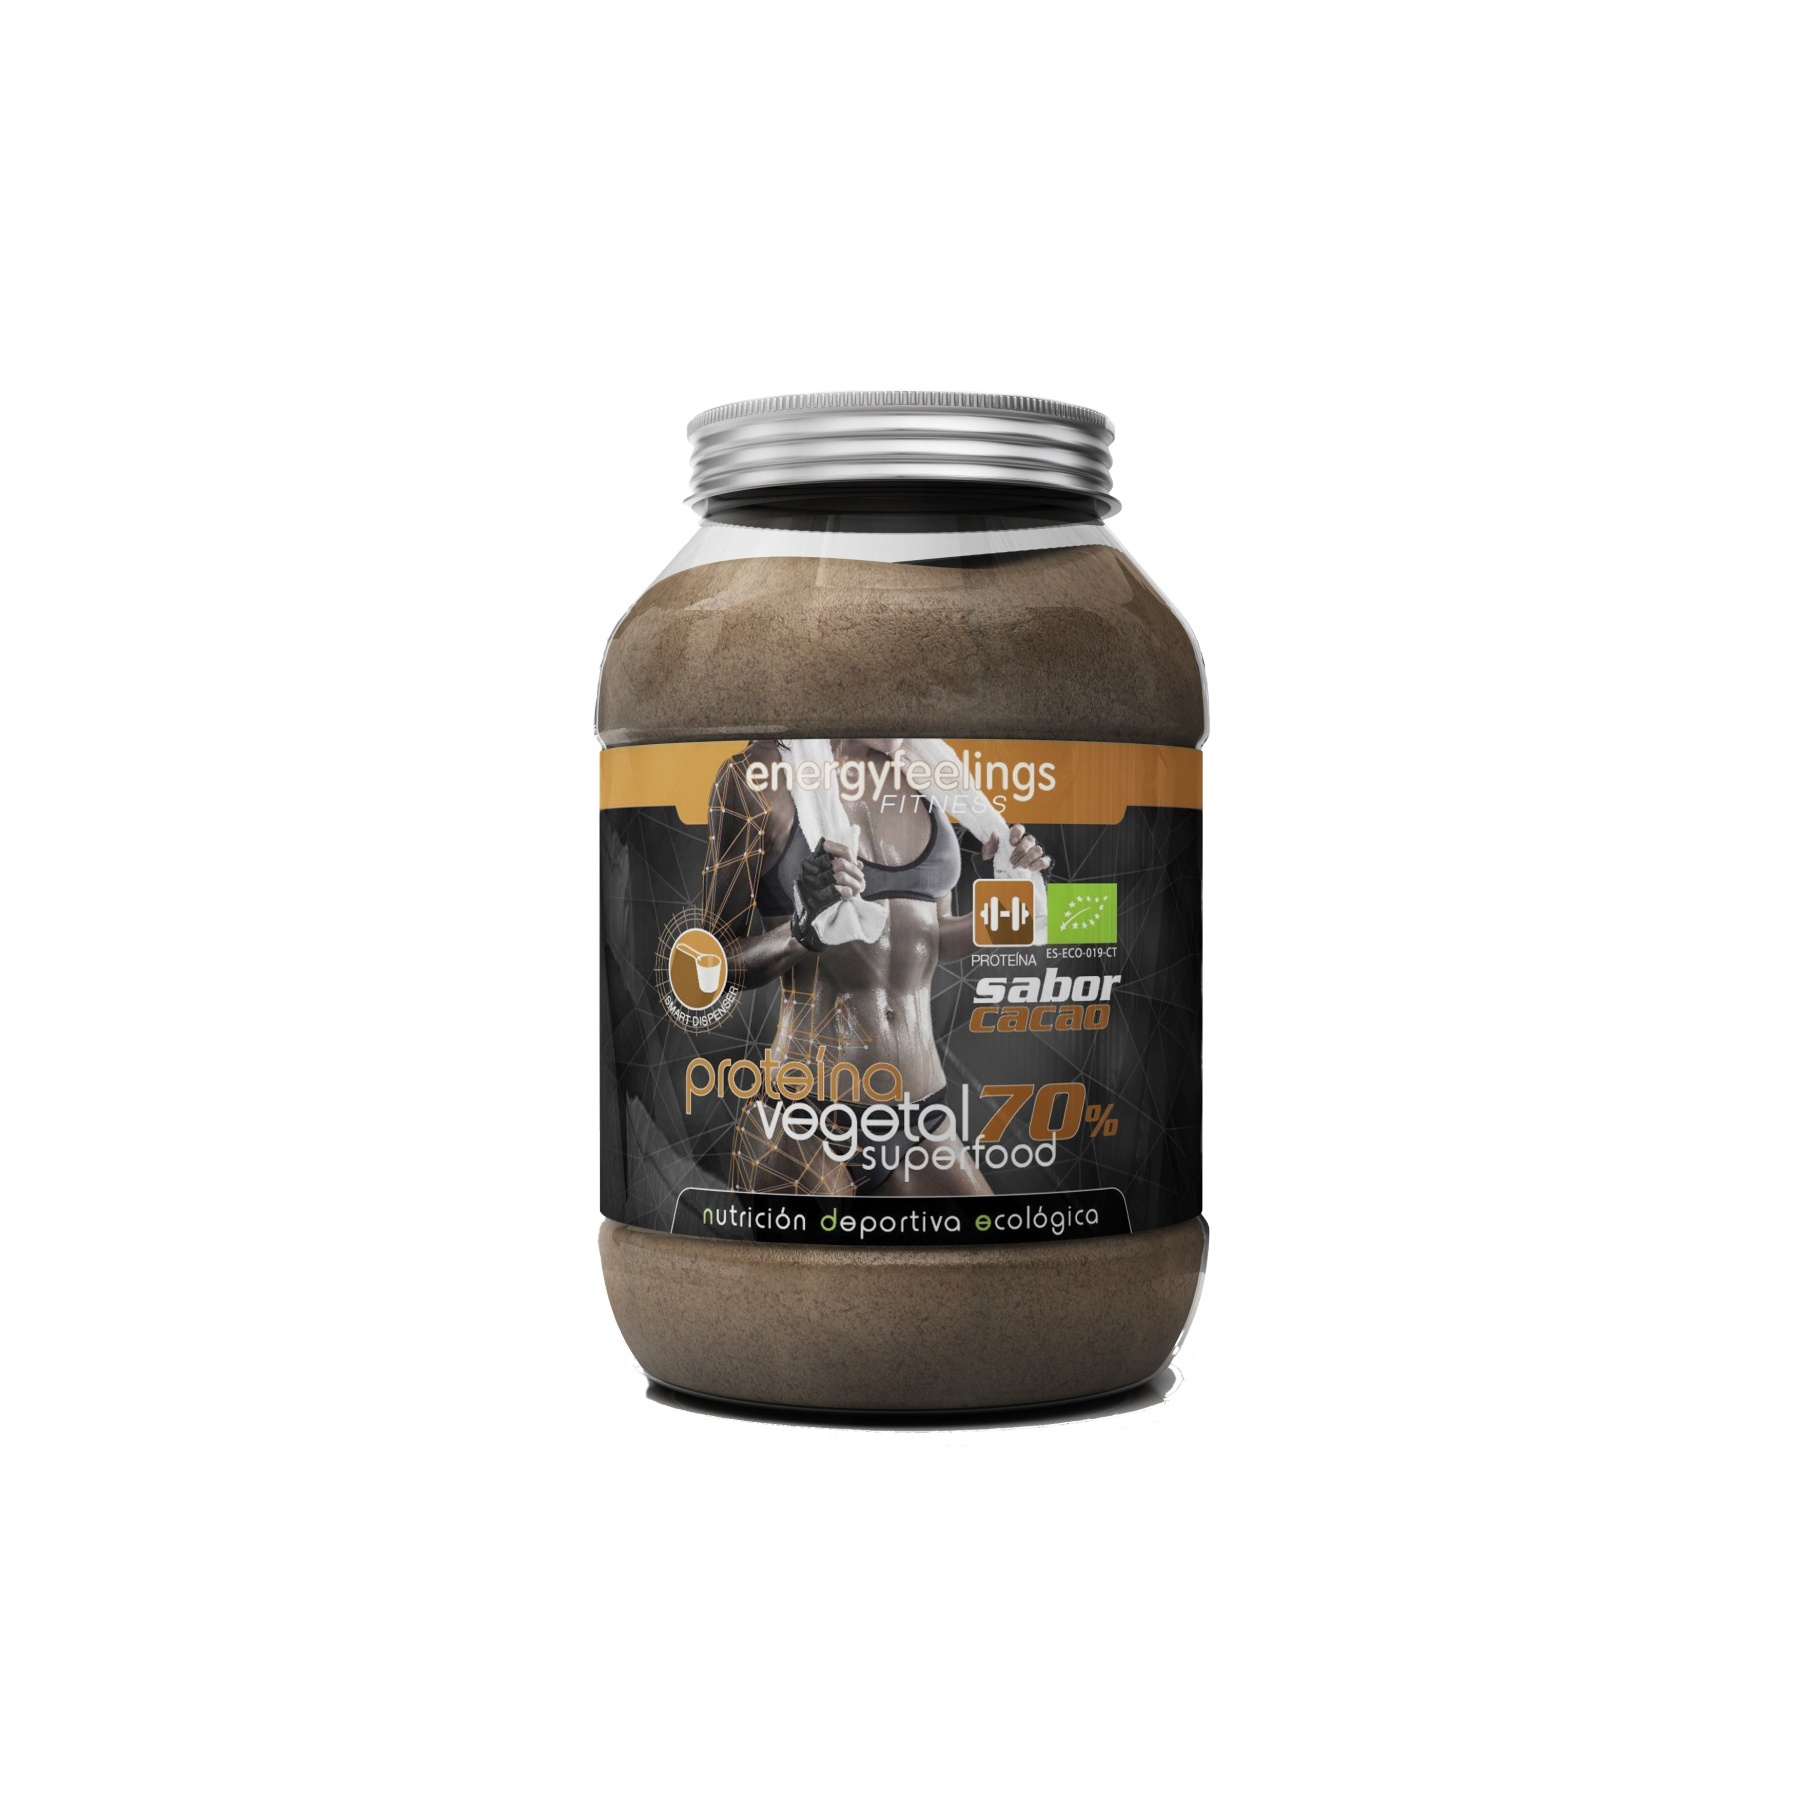 Energy Feelings, Protein Vegan powder Eco-friendly COCOA Vegetable Protein (70%) of Rice, hemp and Pea, 1,5 KG image